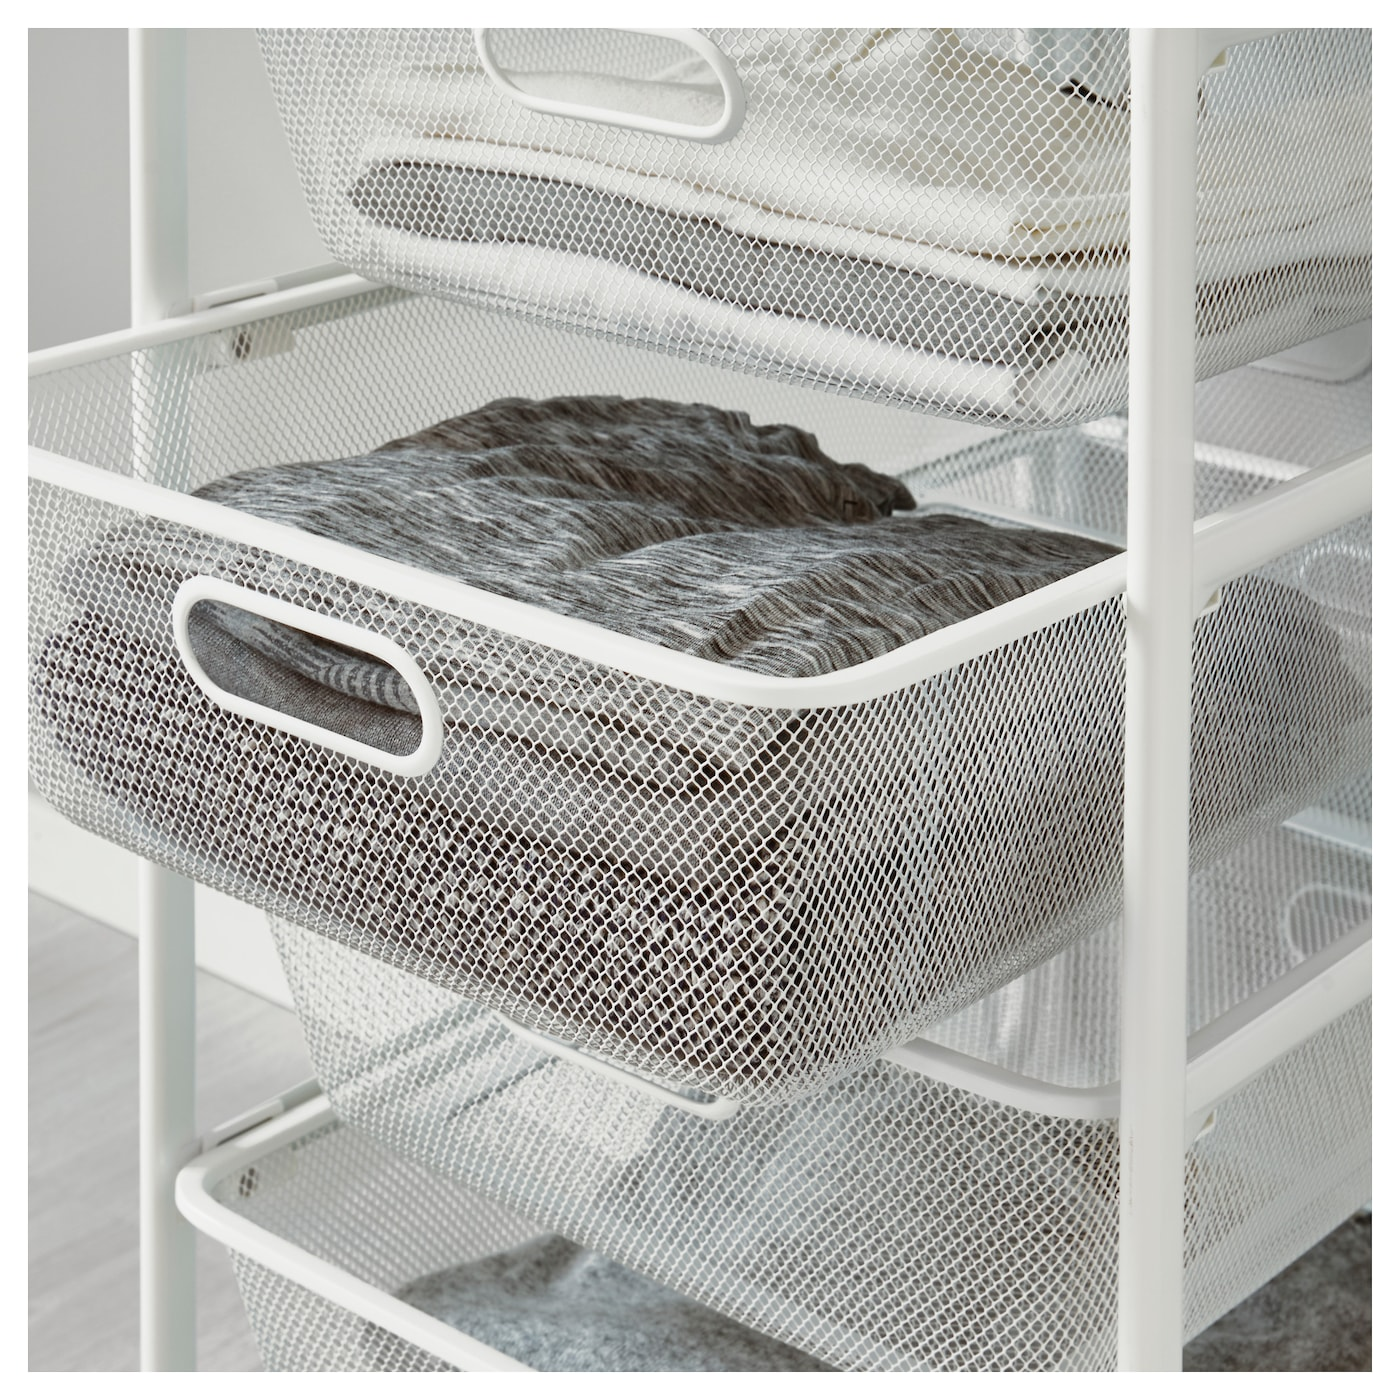 IKEA ALGOT frame with rod/mesh baskets Can also be used in bathrooms and other damp areas indoors.